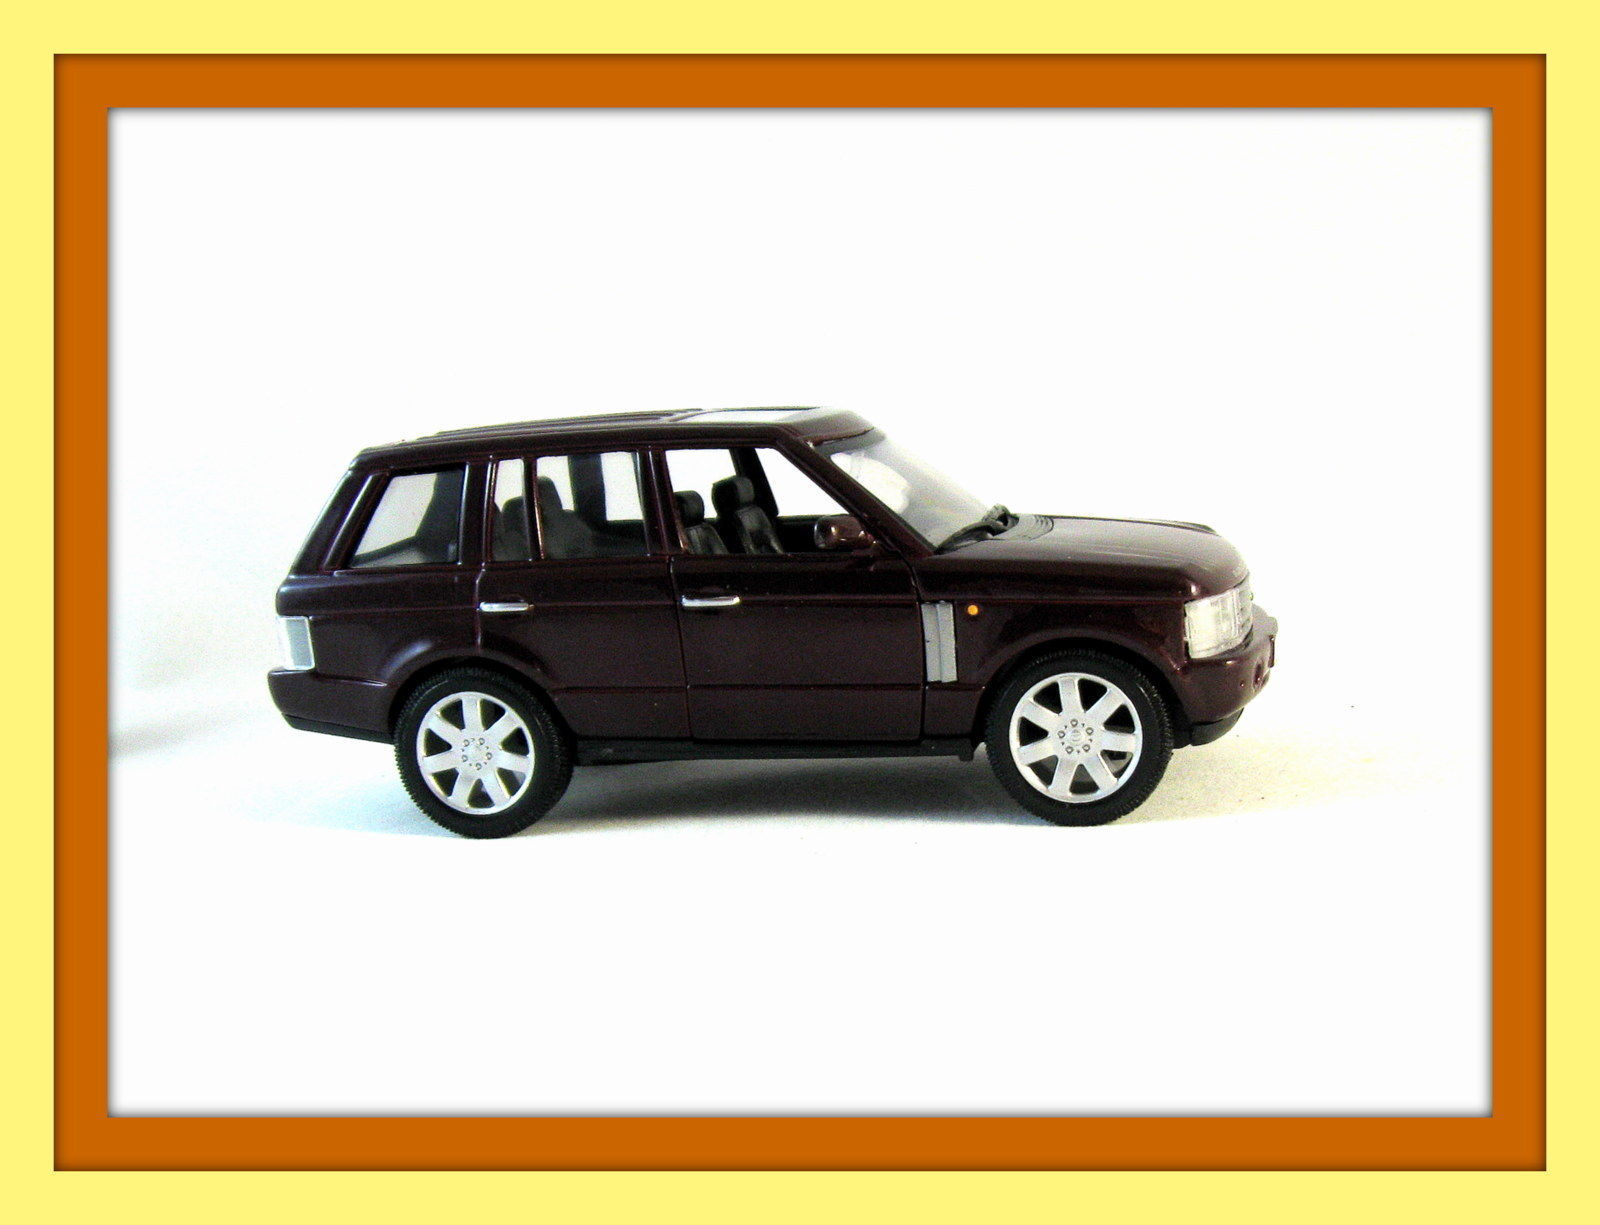 land rover range rover bordeaux welly 1 32 diecast car model collectible new contemporary. Black Bedroom Furniture Sets. Home Design Ideas